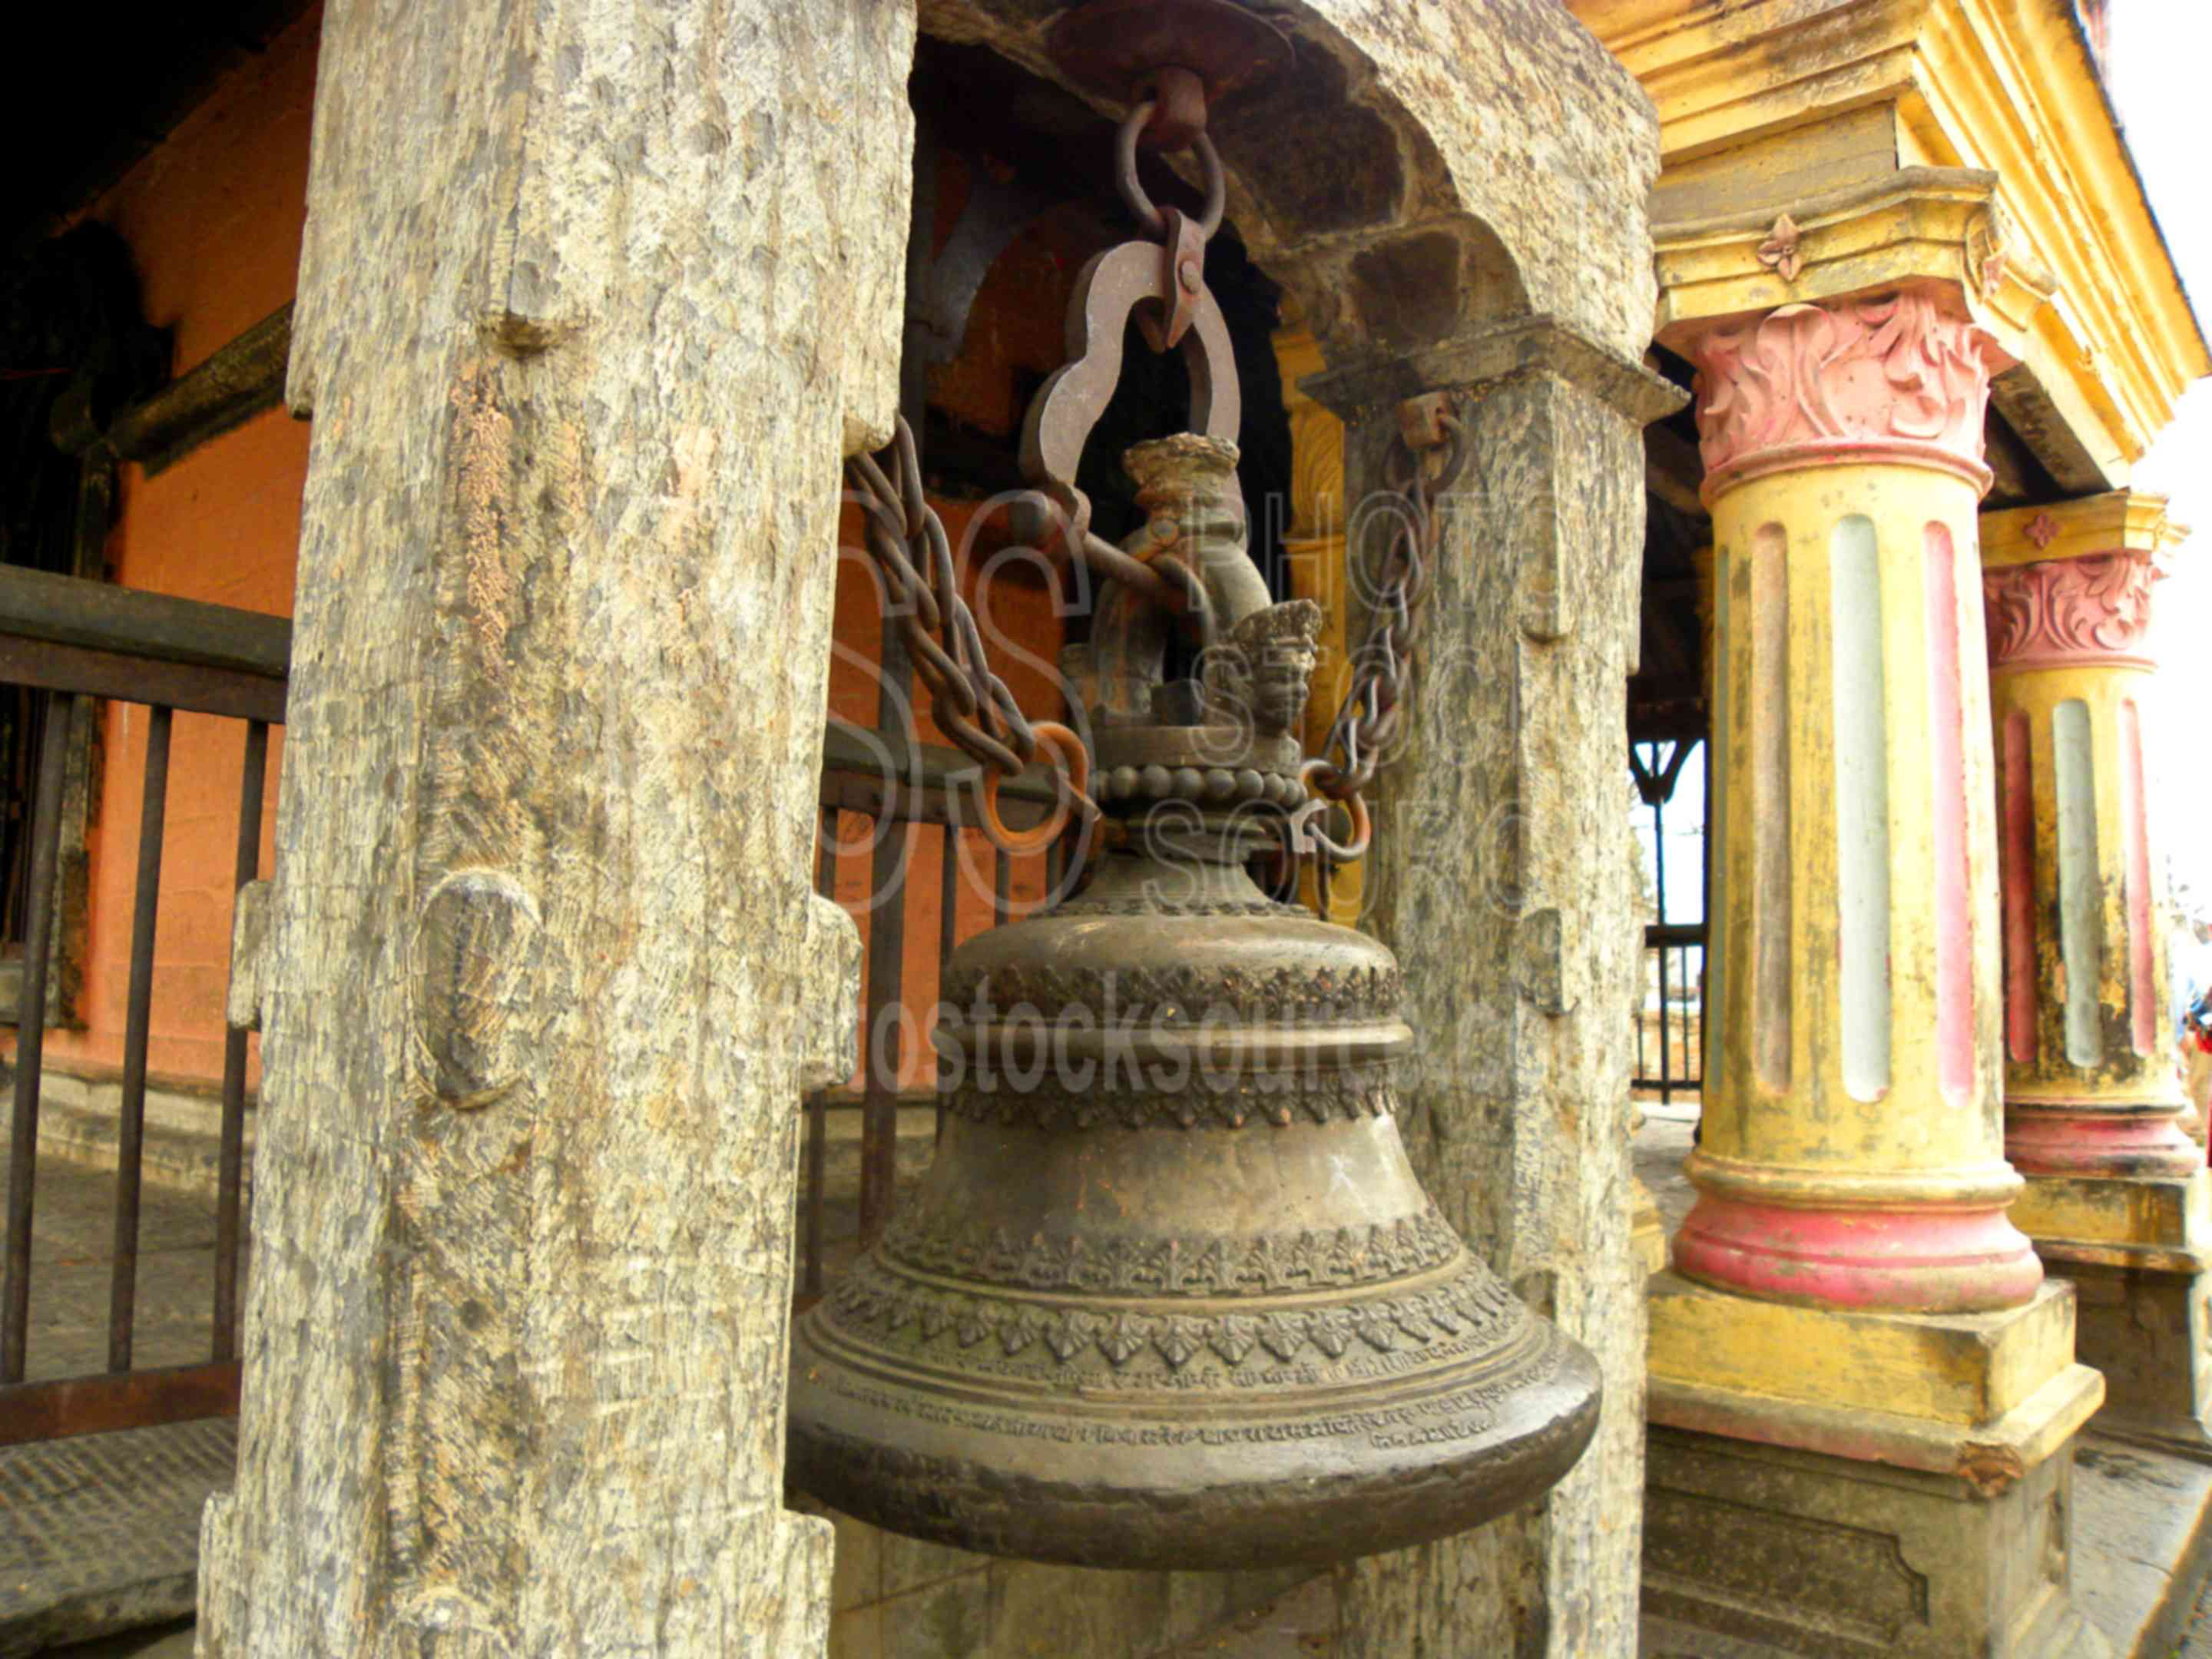 Shrine Bell,people,monk,religious,holy,man,architecture